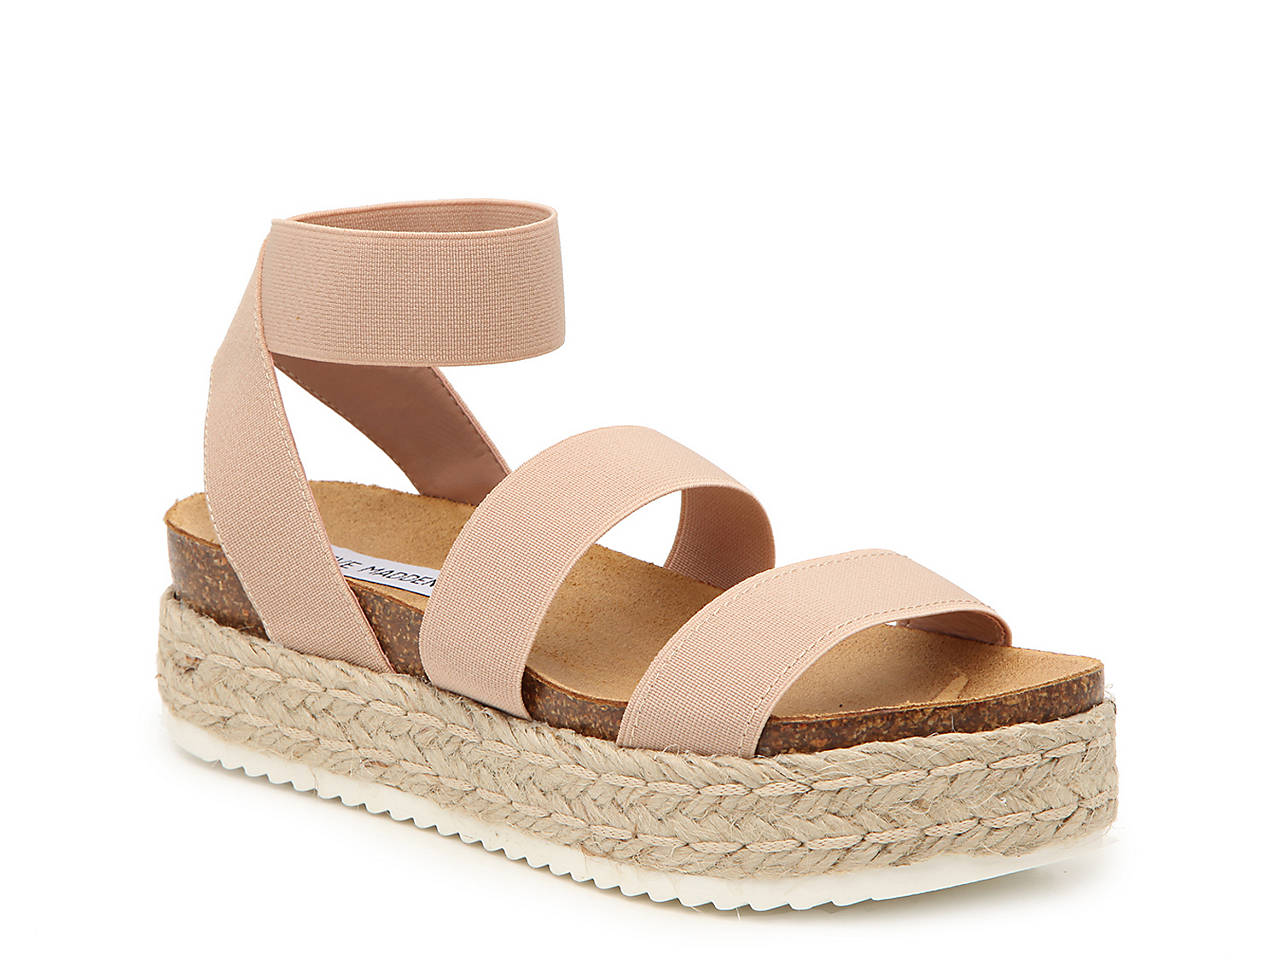 3fe06ccc103 Kimmie Espadrille Wedge Sandal